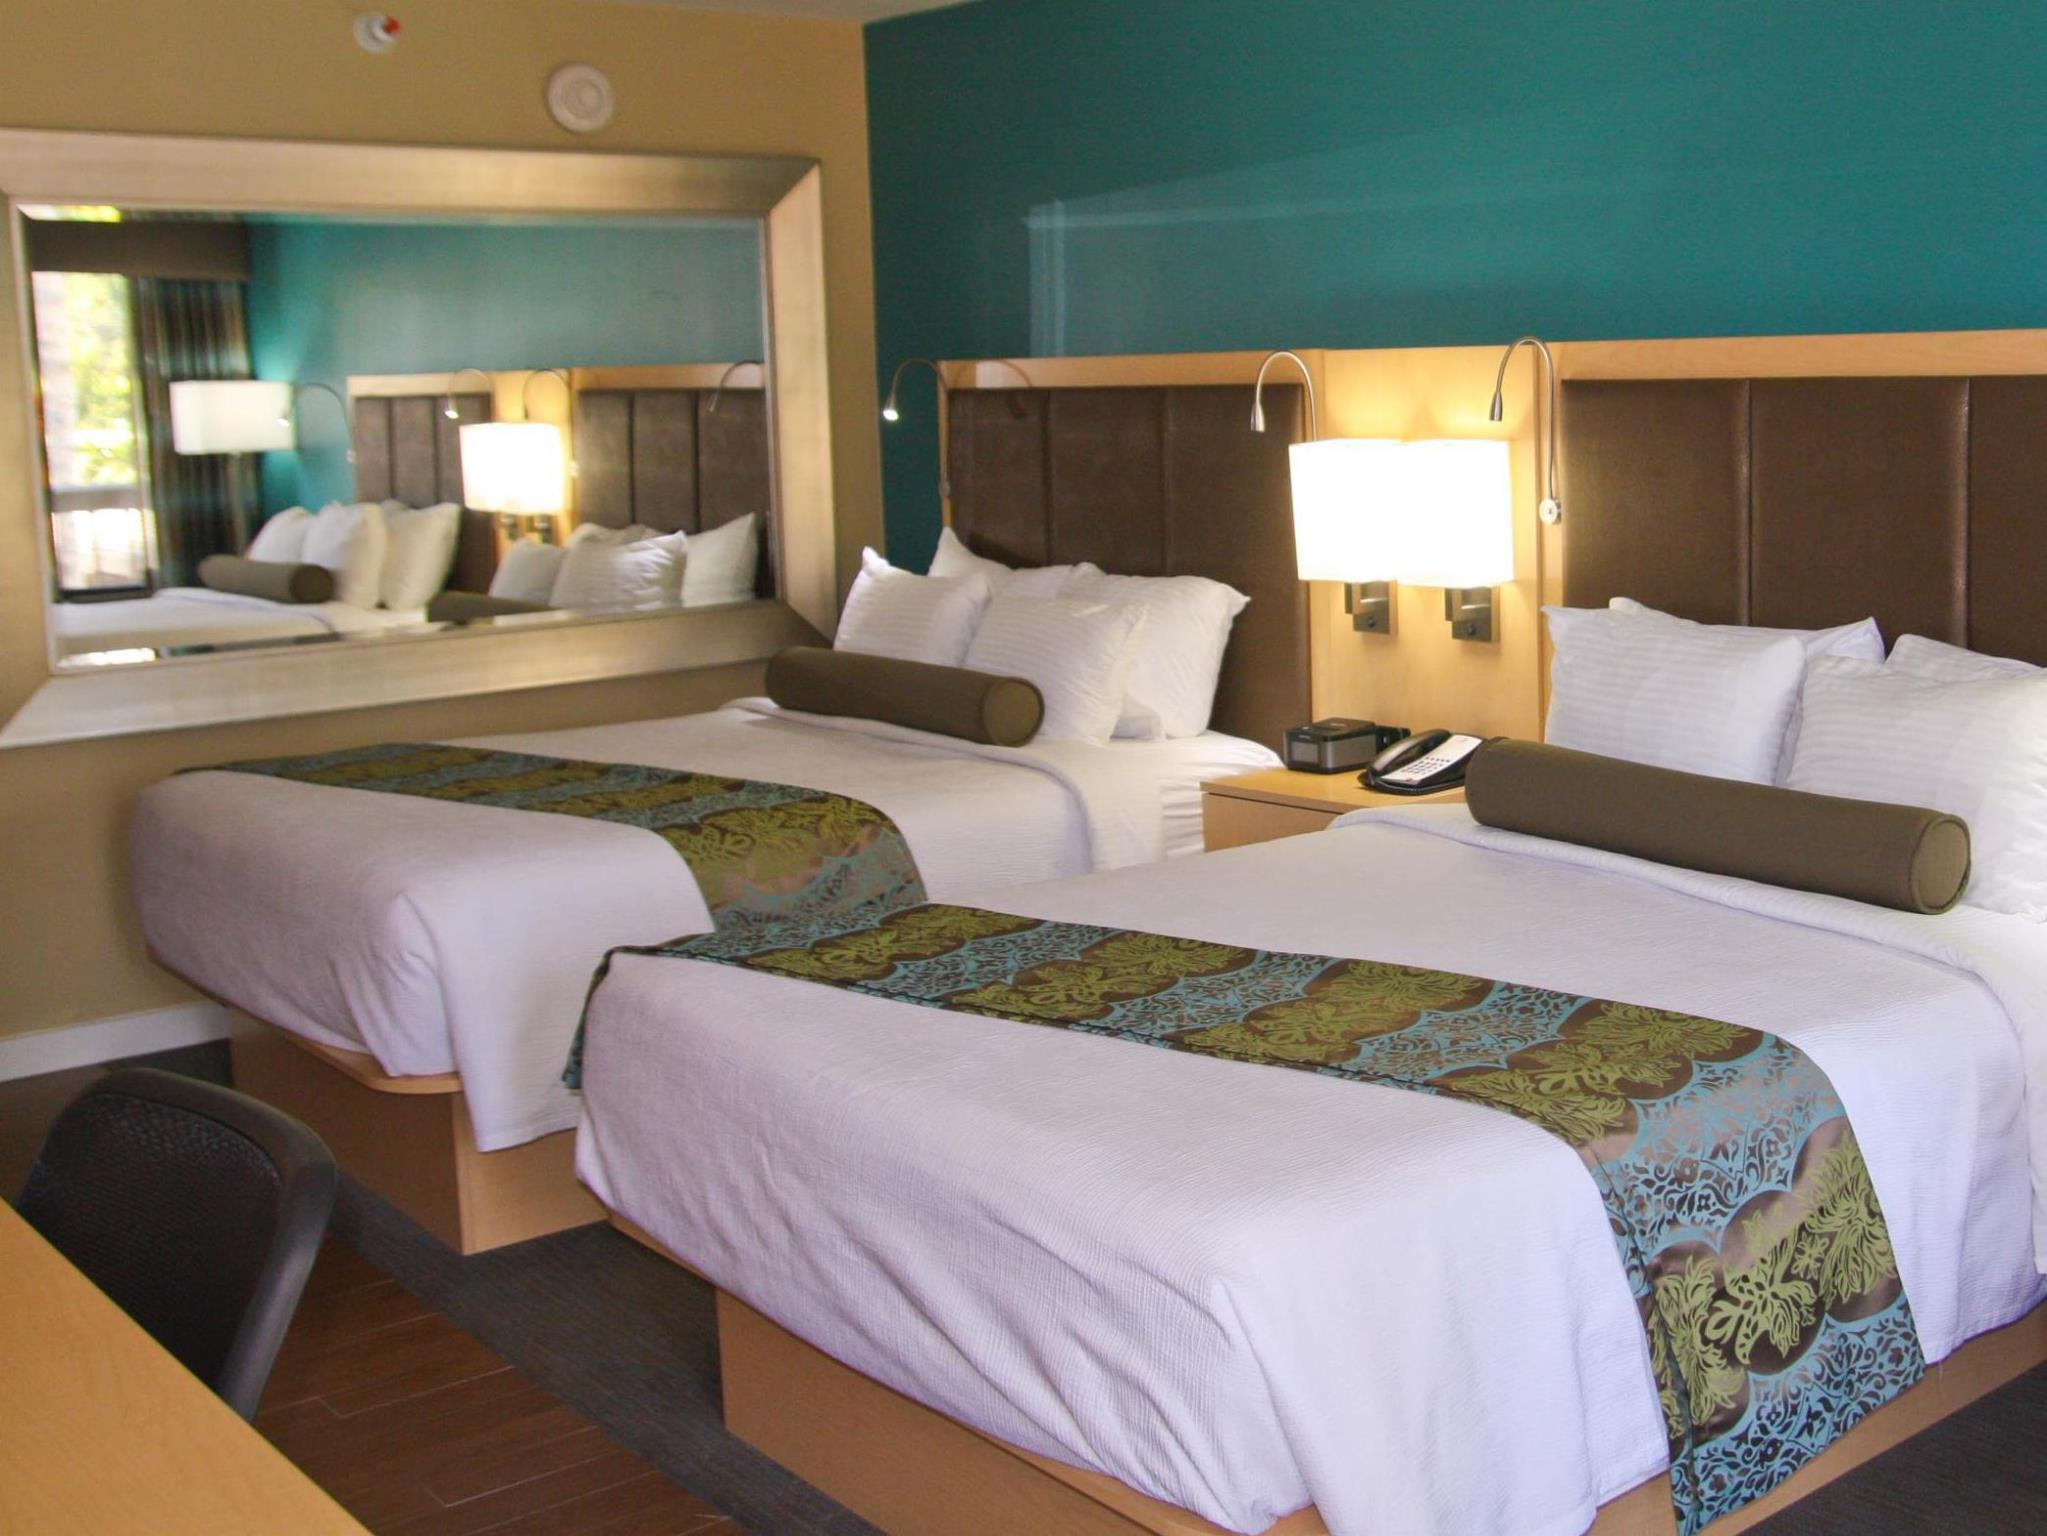 Suite with 2 Queen Beds and Shower - Disabled Access, No Smoking